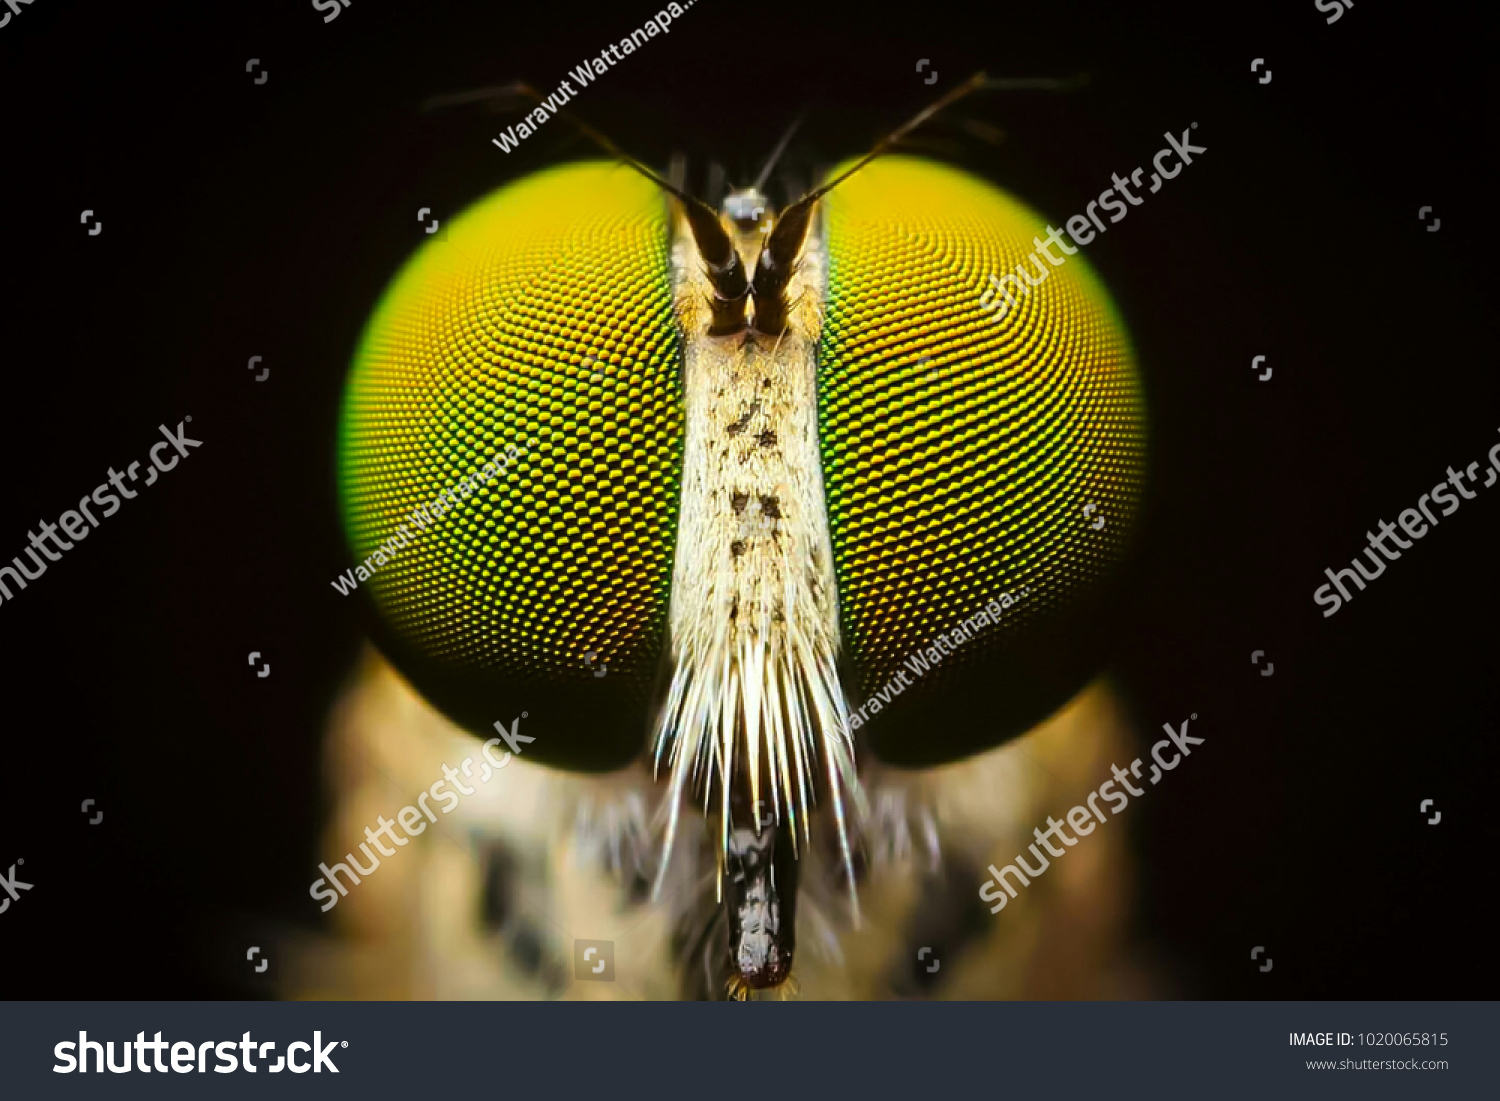 Macro shot. The Calliphoridae (commonly known as blow fly, carrion fly, bluebottle, greenbottle, or cluster fly) are a family of insects in the order Diptera.Showing of eyes detail.Insect life concept #1020065815